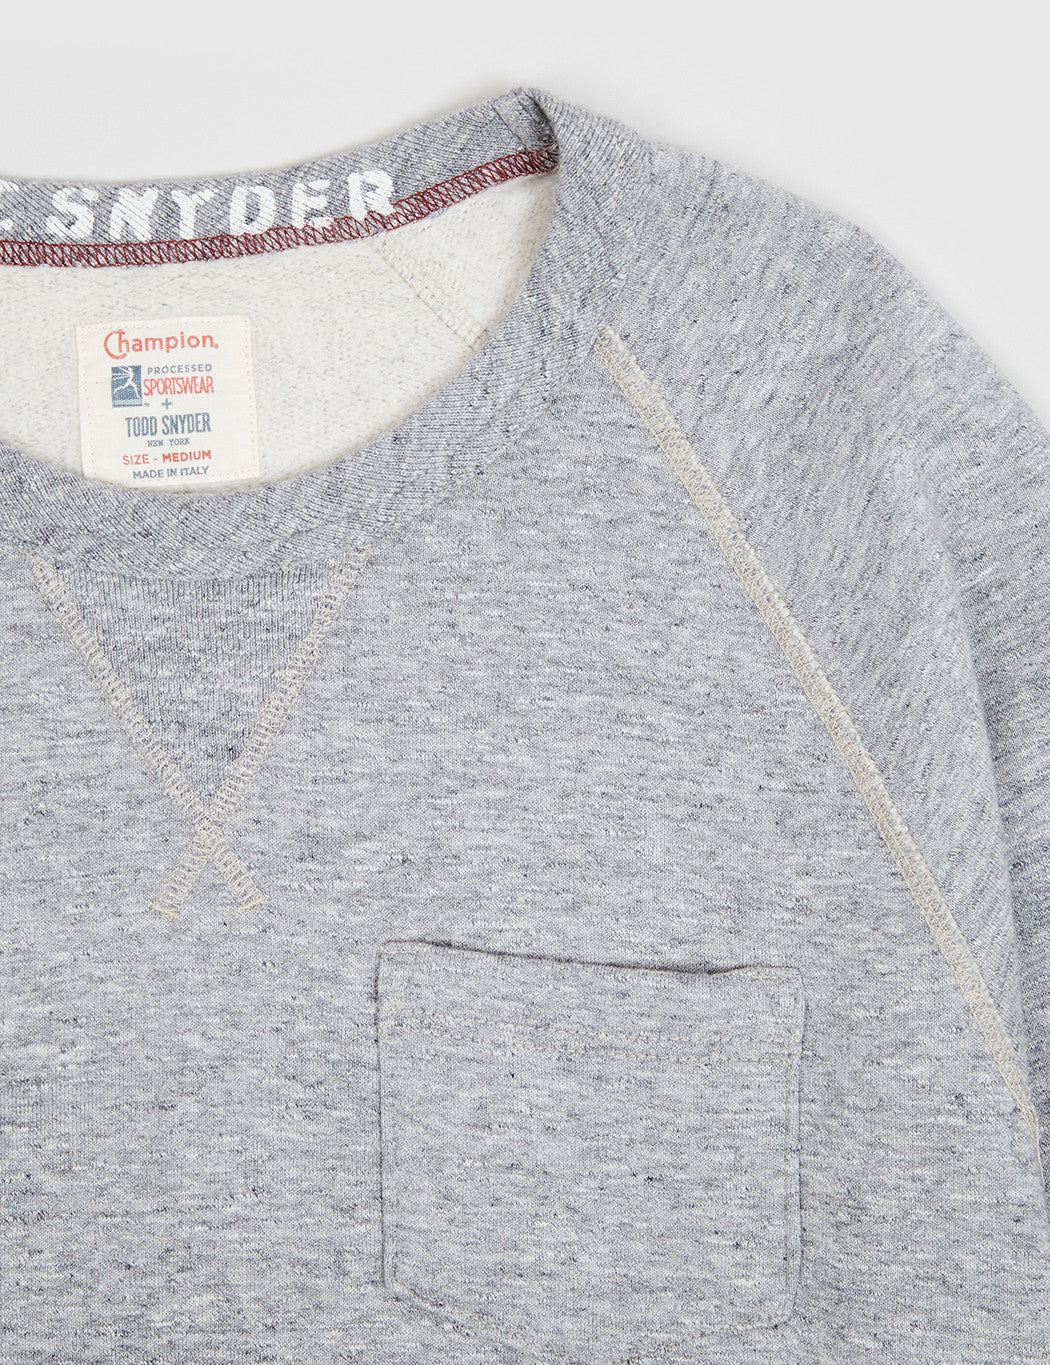 Champion x Todd Snyder Crewneck Sweat - Grey Heather